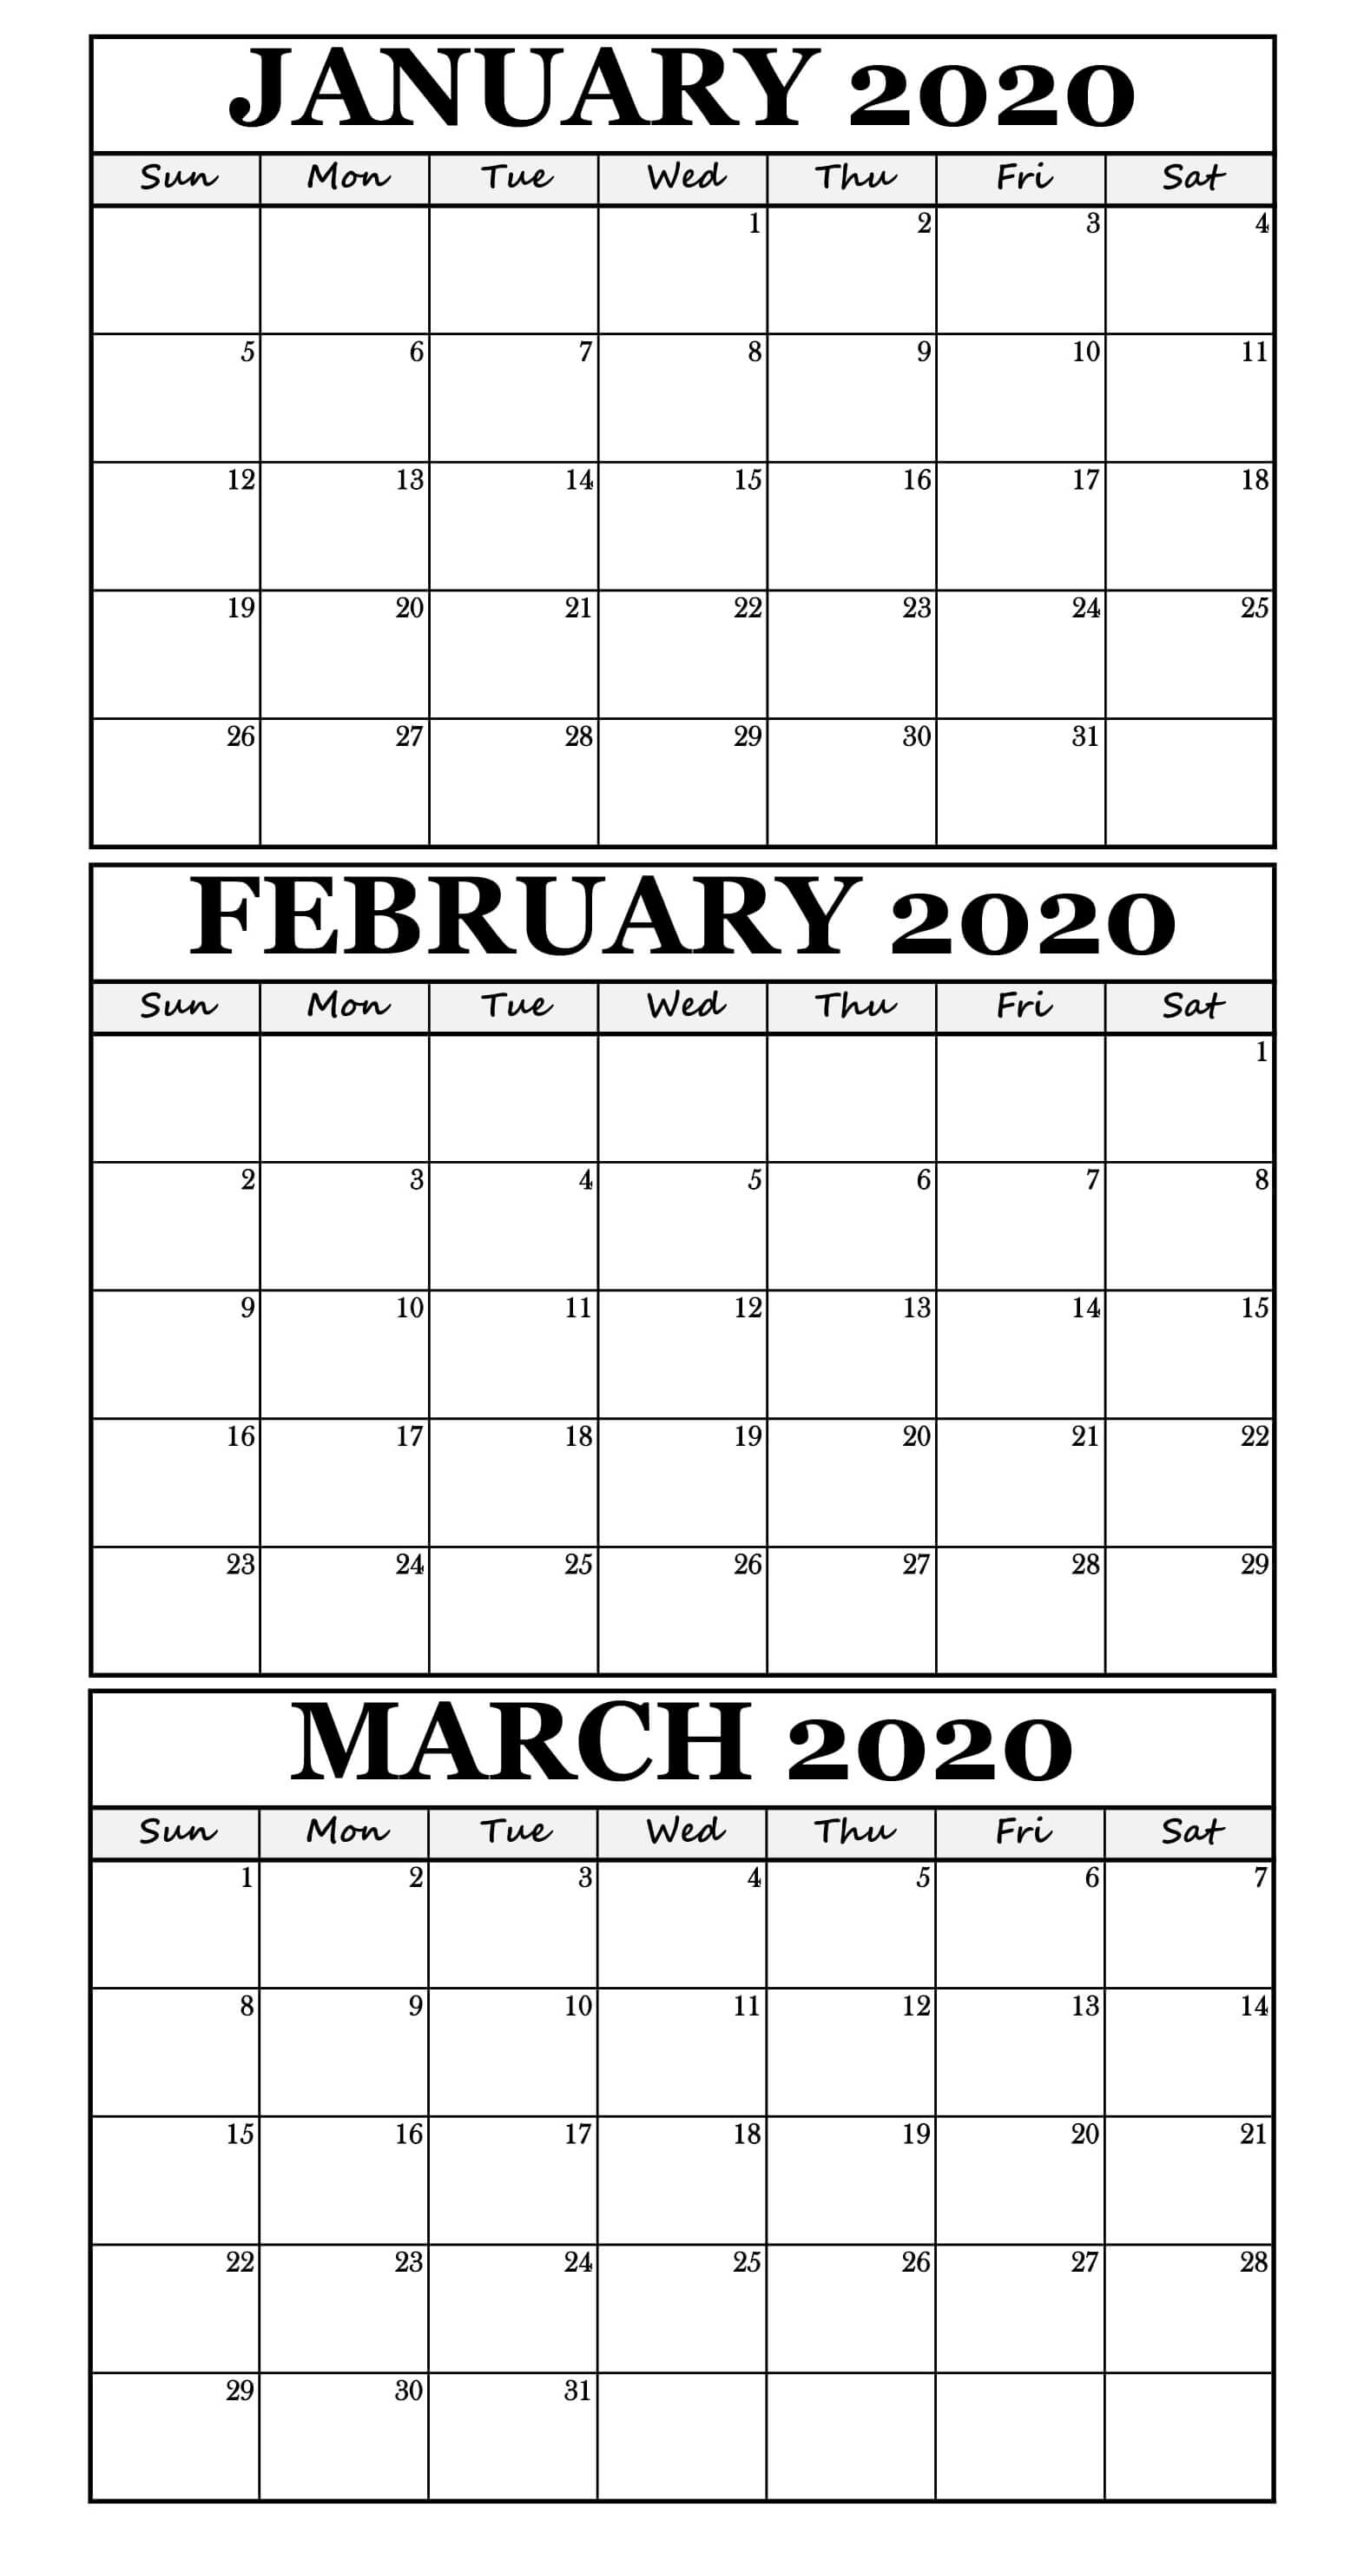 January February March 2020 Calendar For Three Month scaled